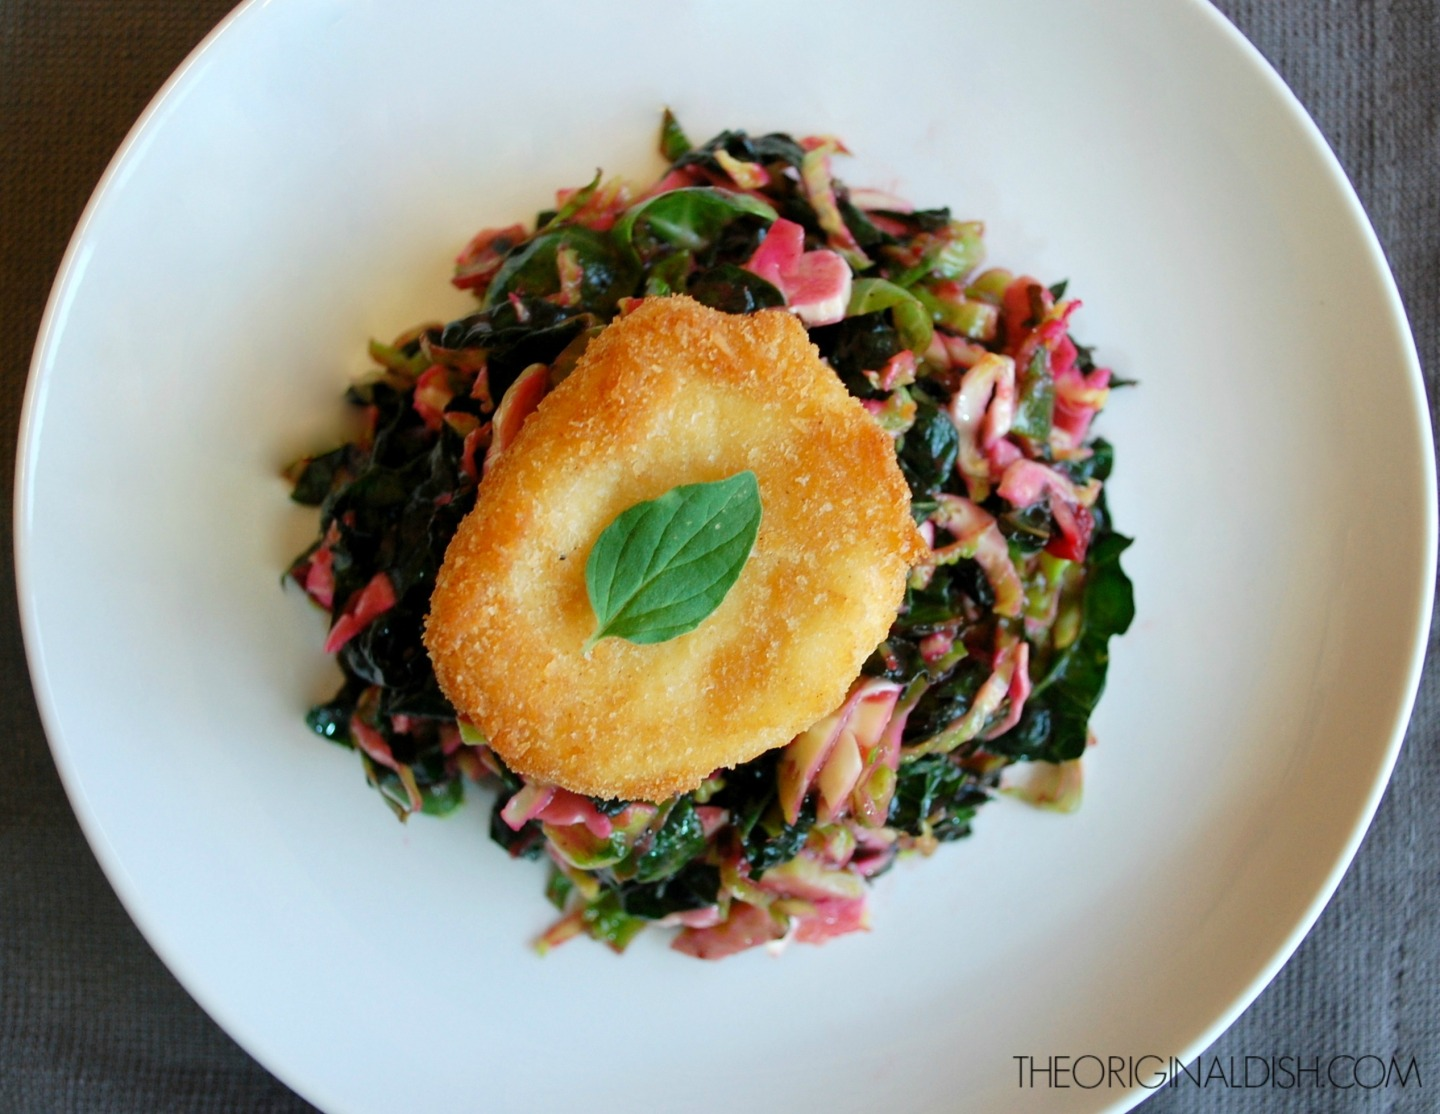 Kale Slaw with Cranberry Vinaigrette & Fried Goat Cheese